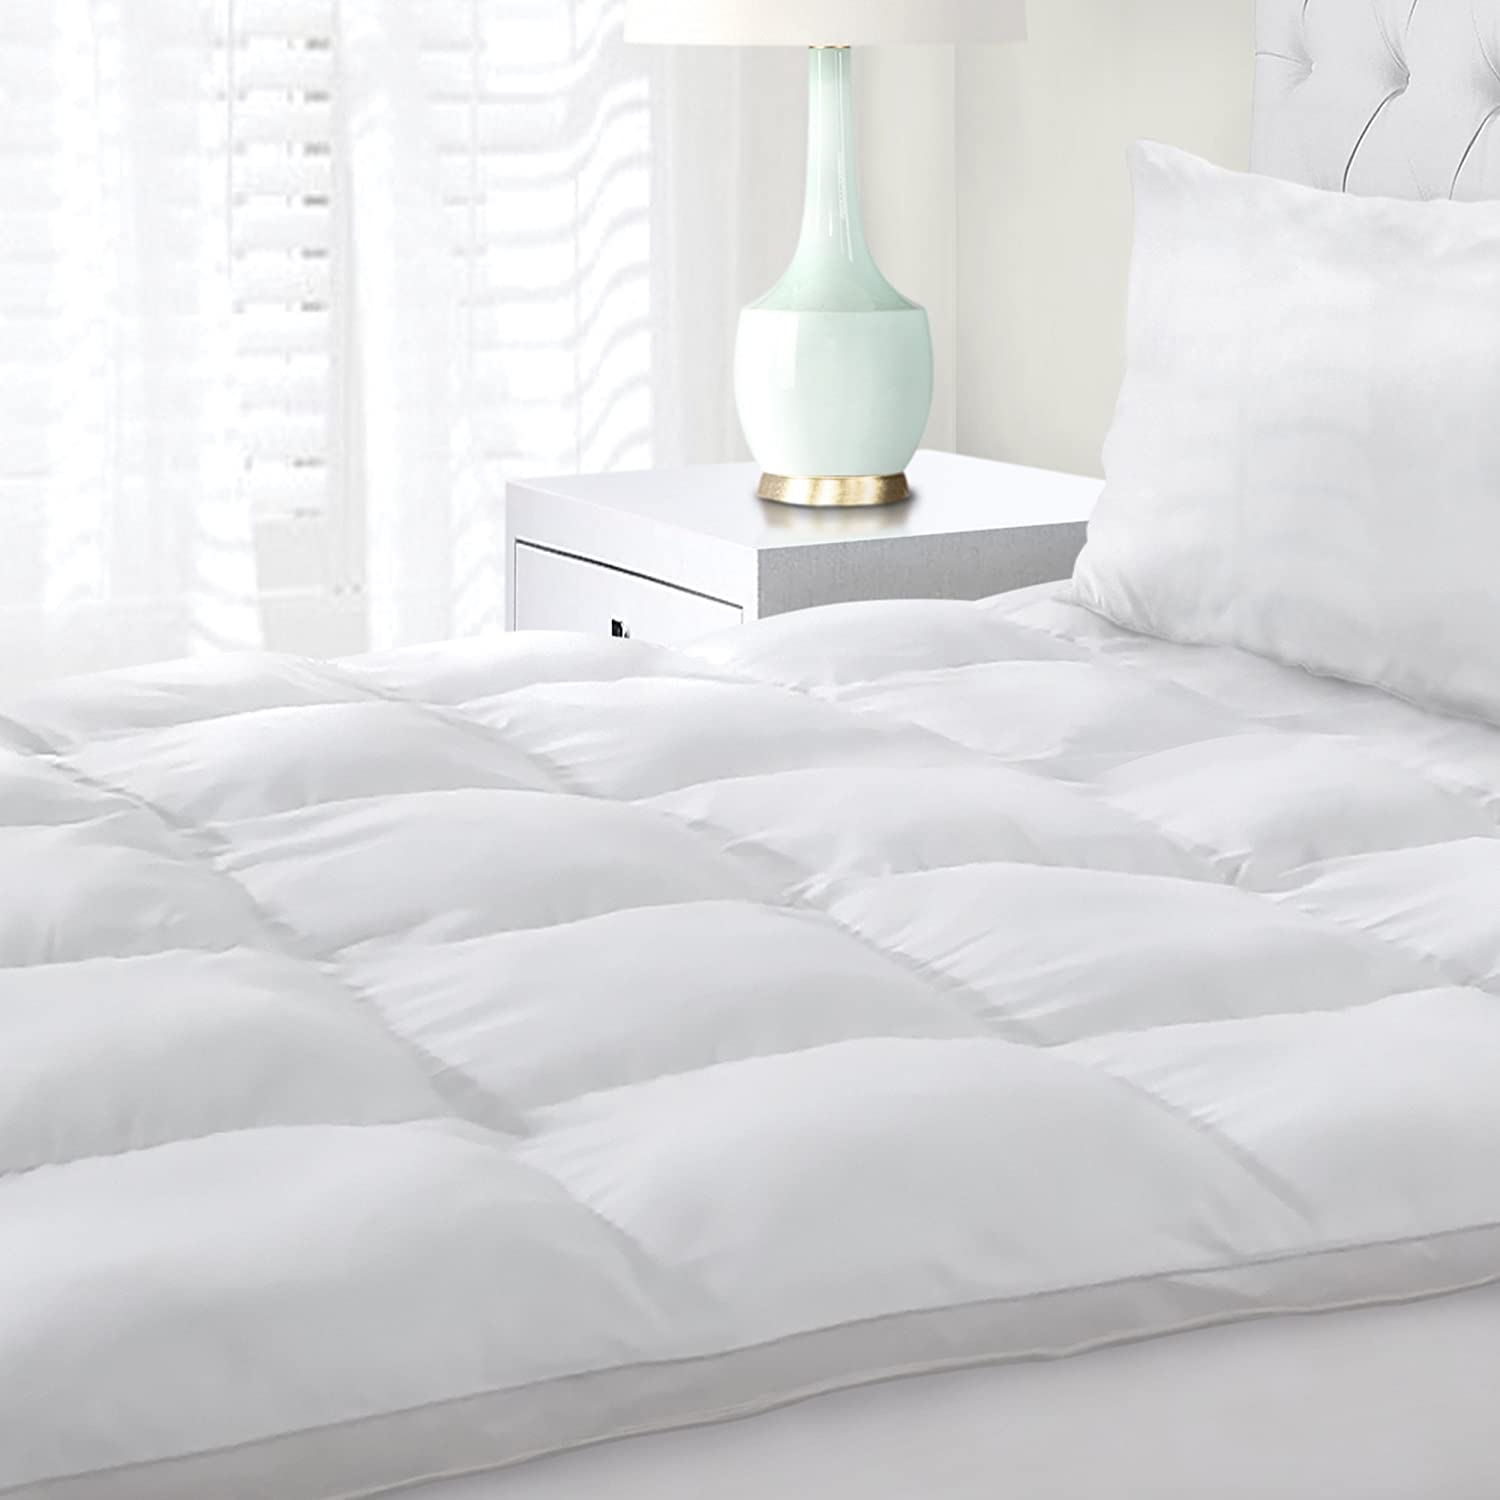 androslfptlorescutaway andros firm top luxury pillow depot tx beautysleep topper mattress products simmons